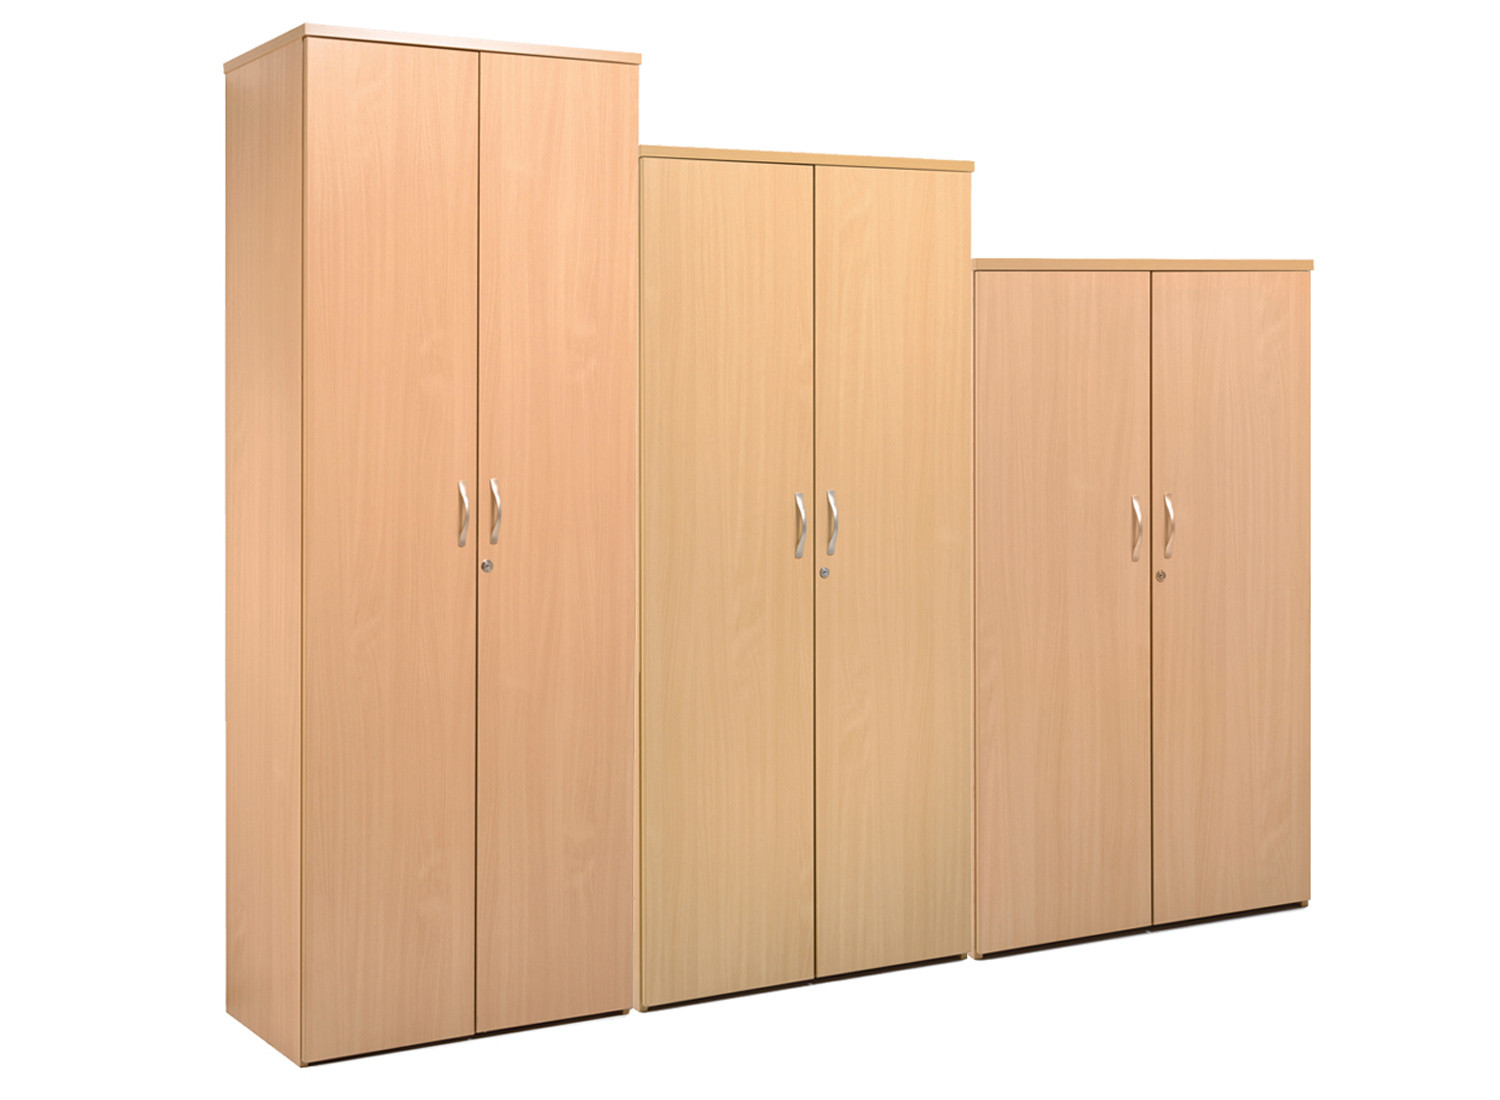 Value Line Classic+ Double Door Cupboard